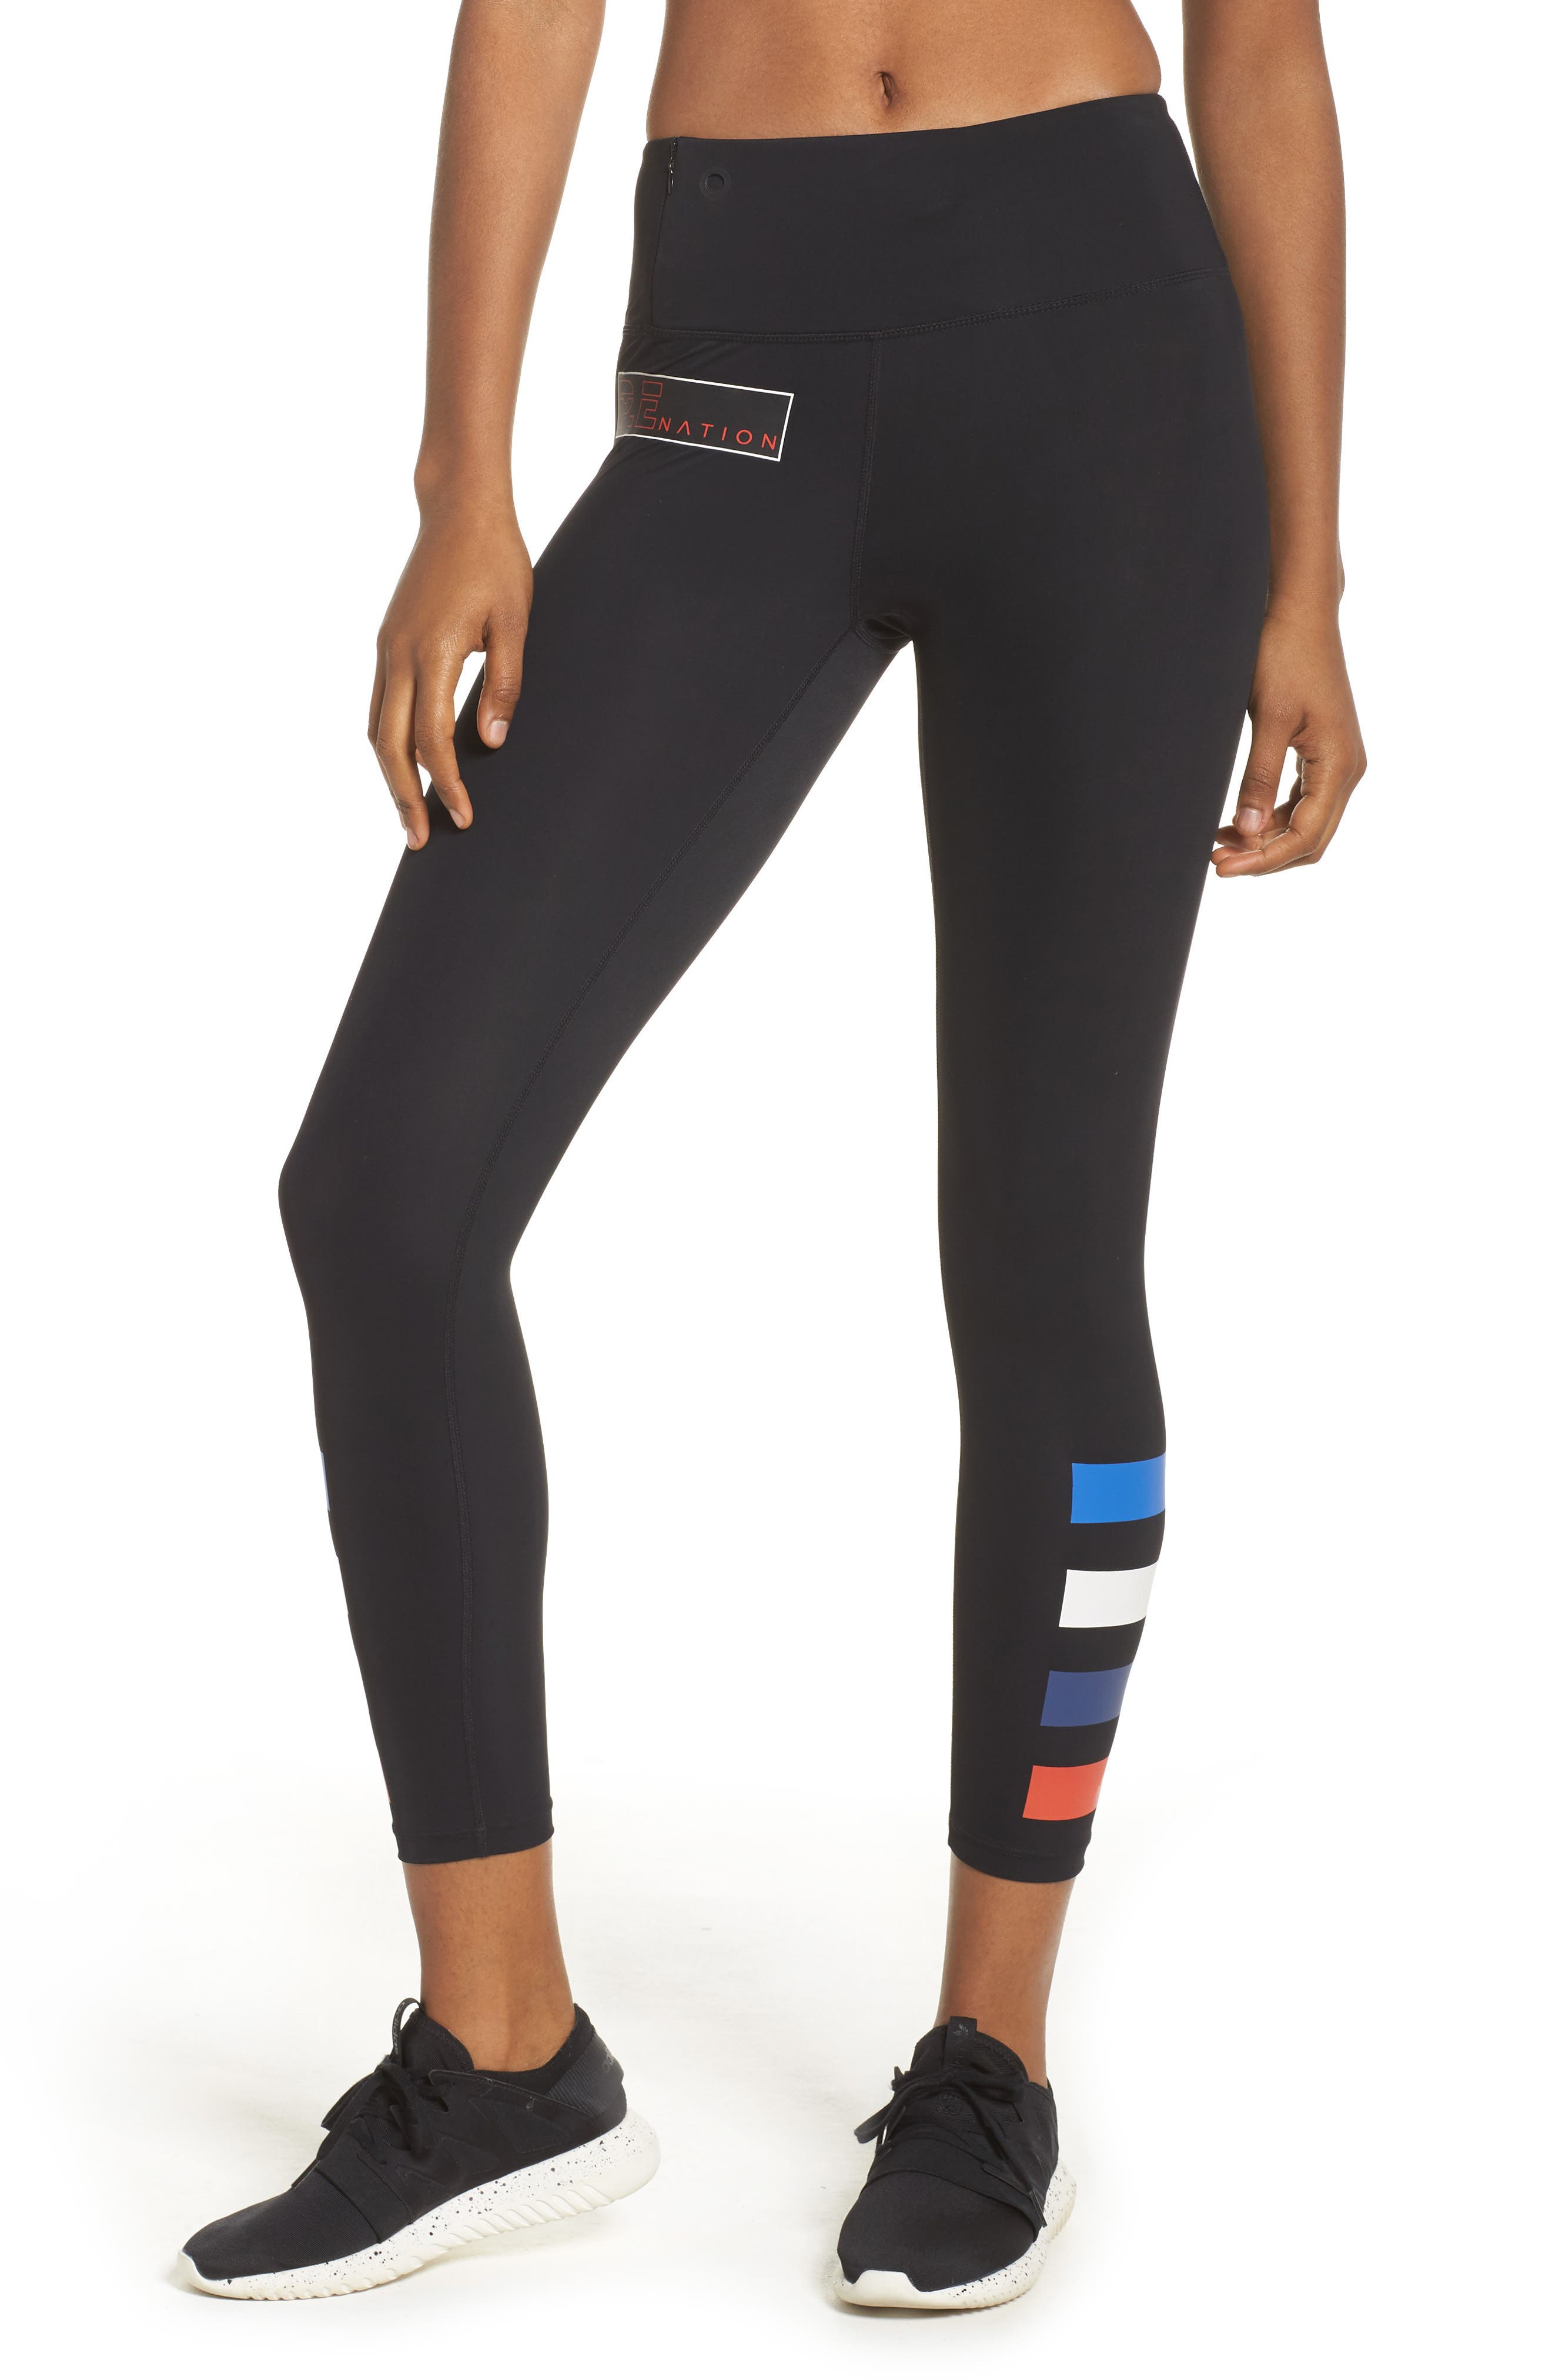 P.E Nation The Resilient Ankle Leggings